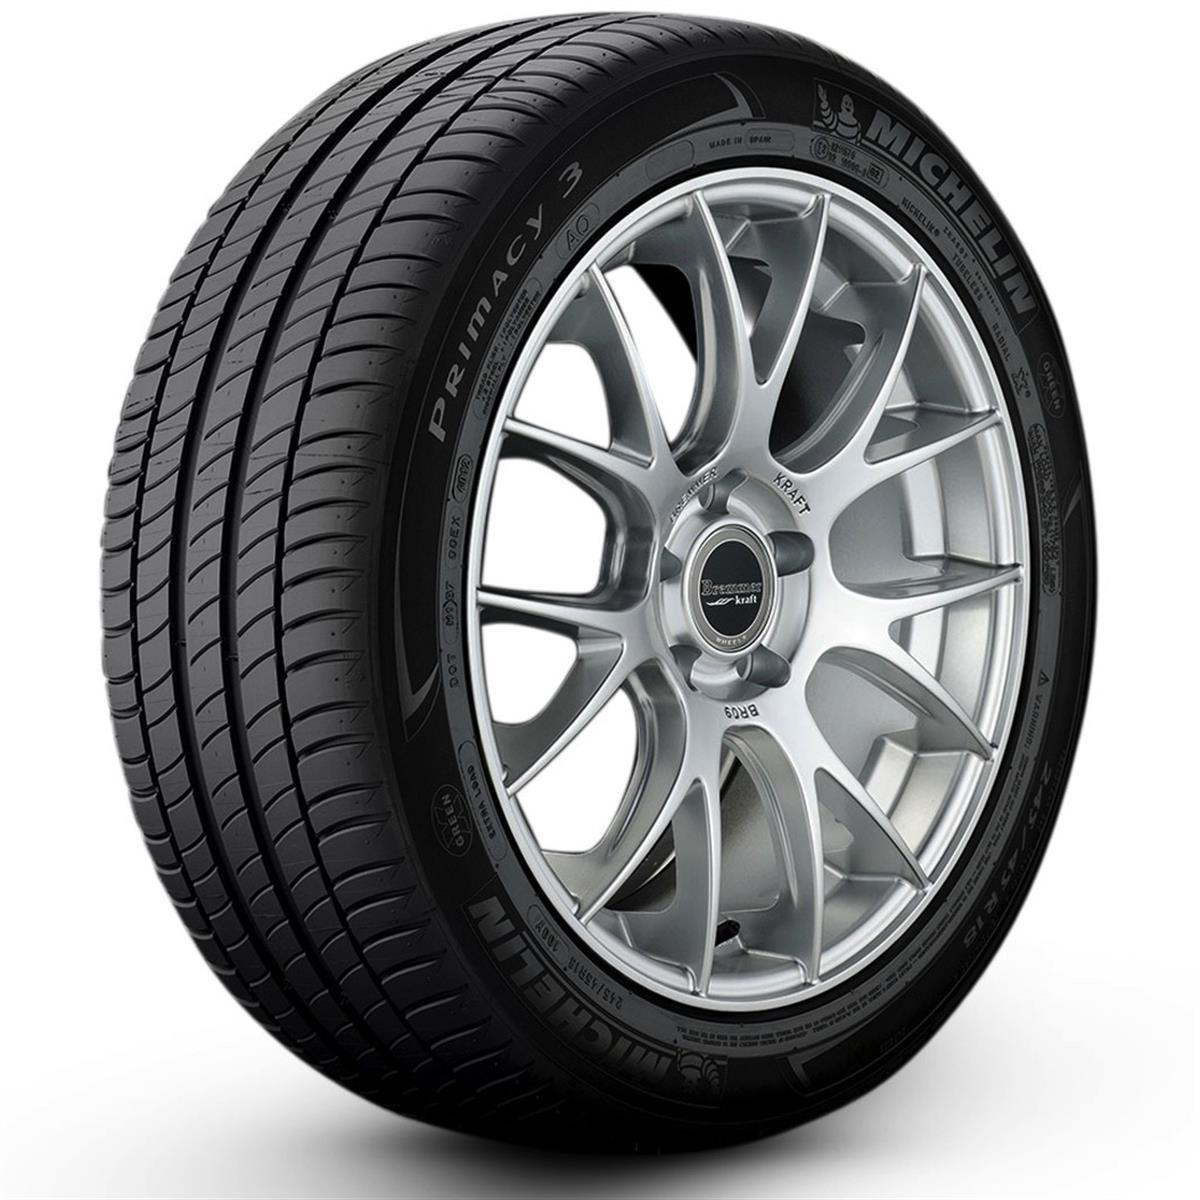 PNEU 205/55-16 94V PRIMACY 3 MICHELIN